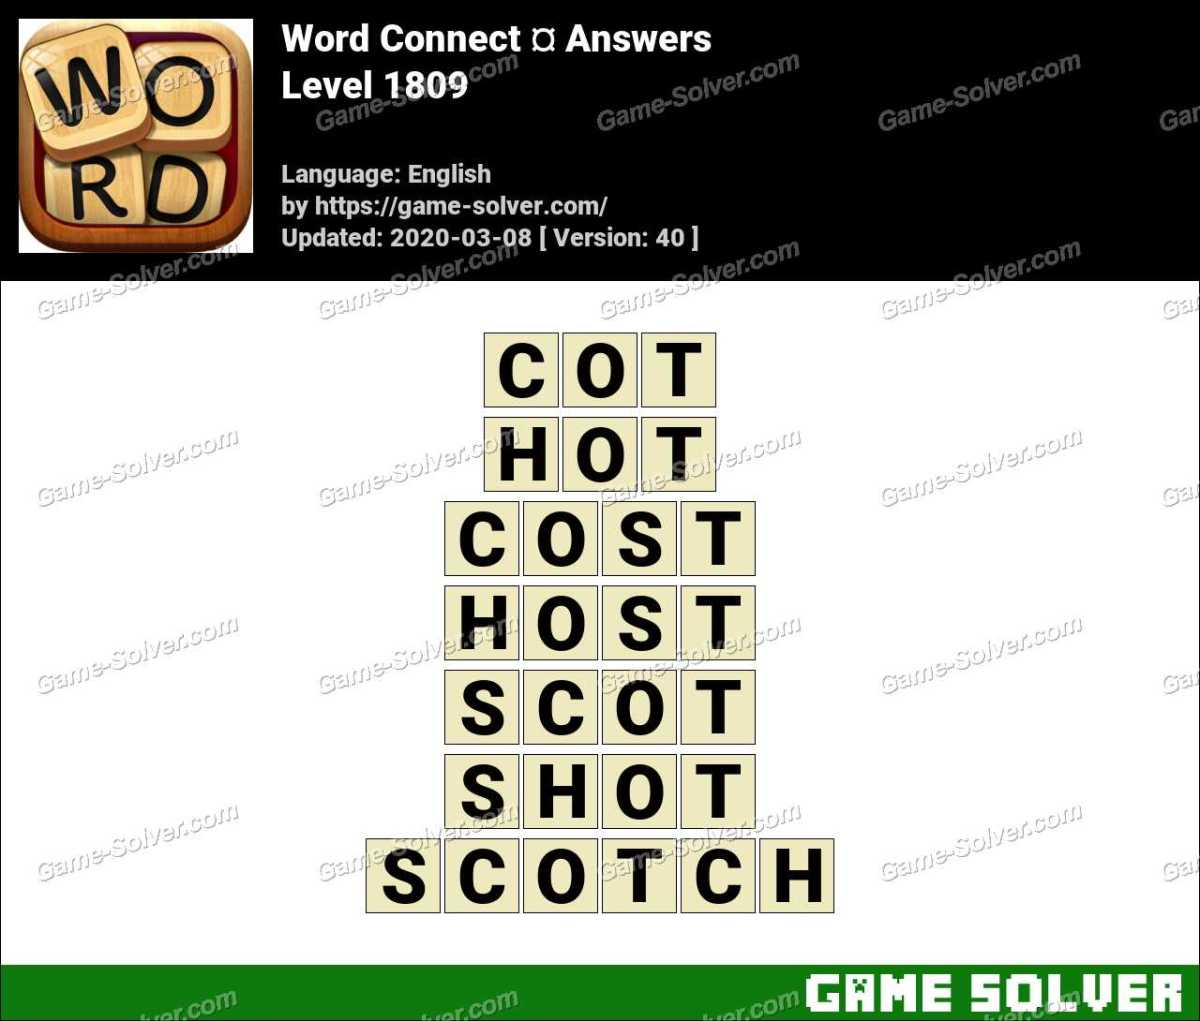 Word Connect Level 1809 Answers